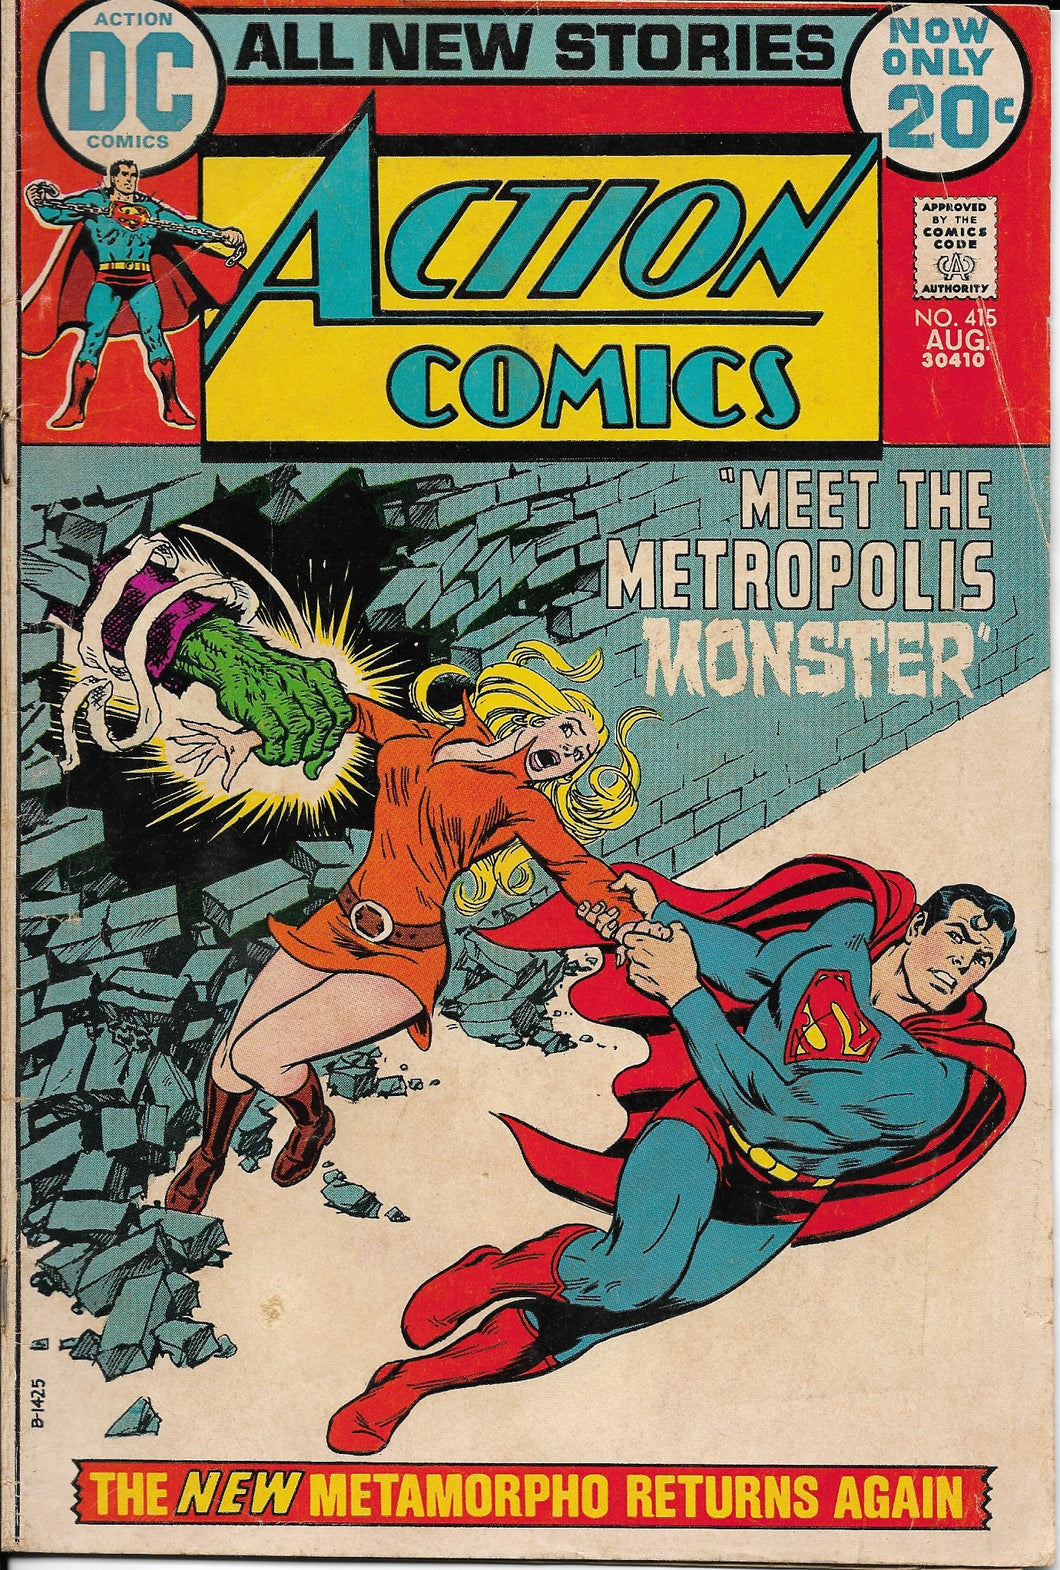 Action Comics No. 415,